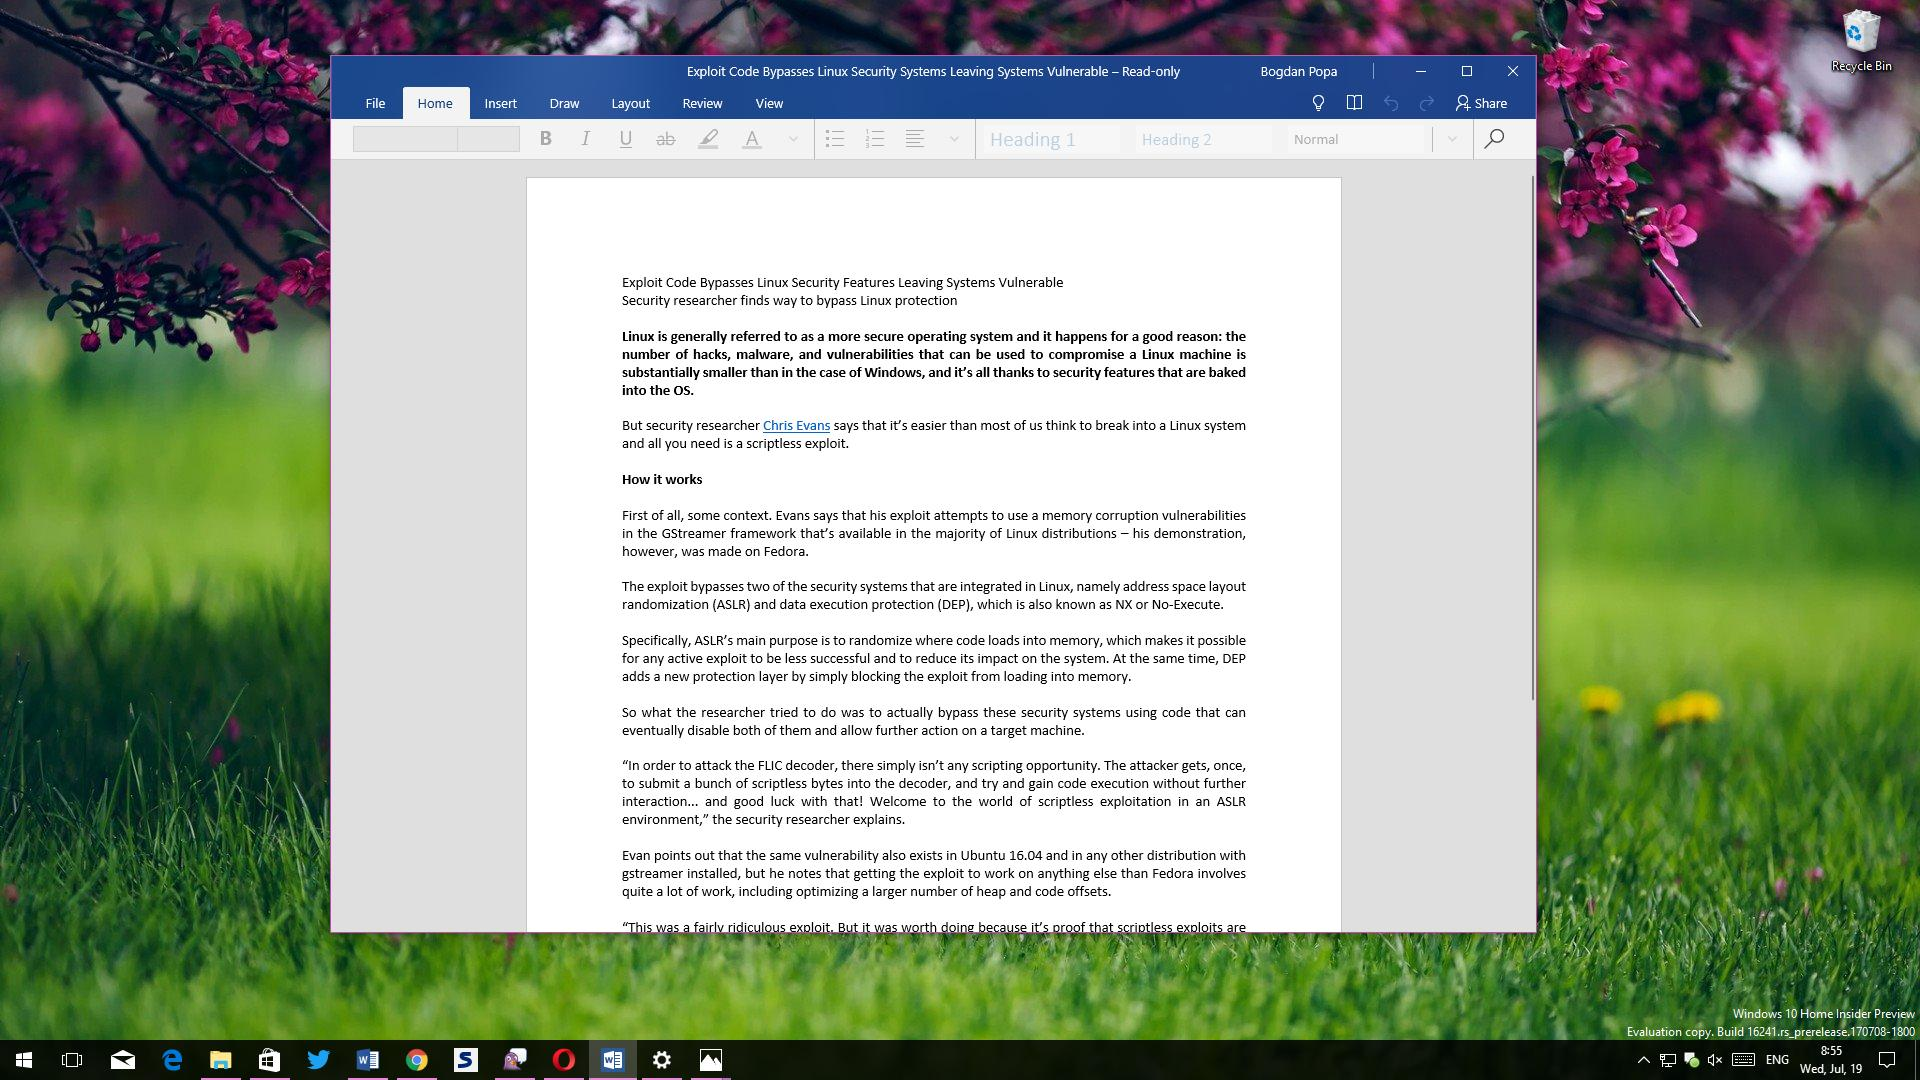 Microsoft Office Updated with Fluent Design on Windows 10